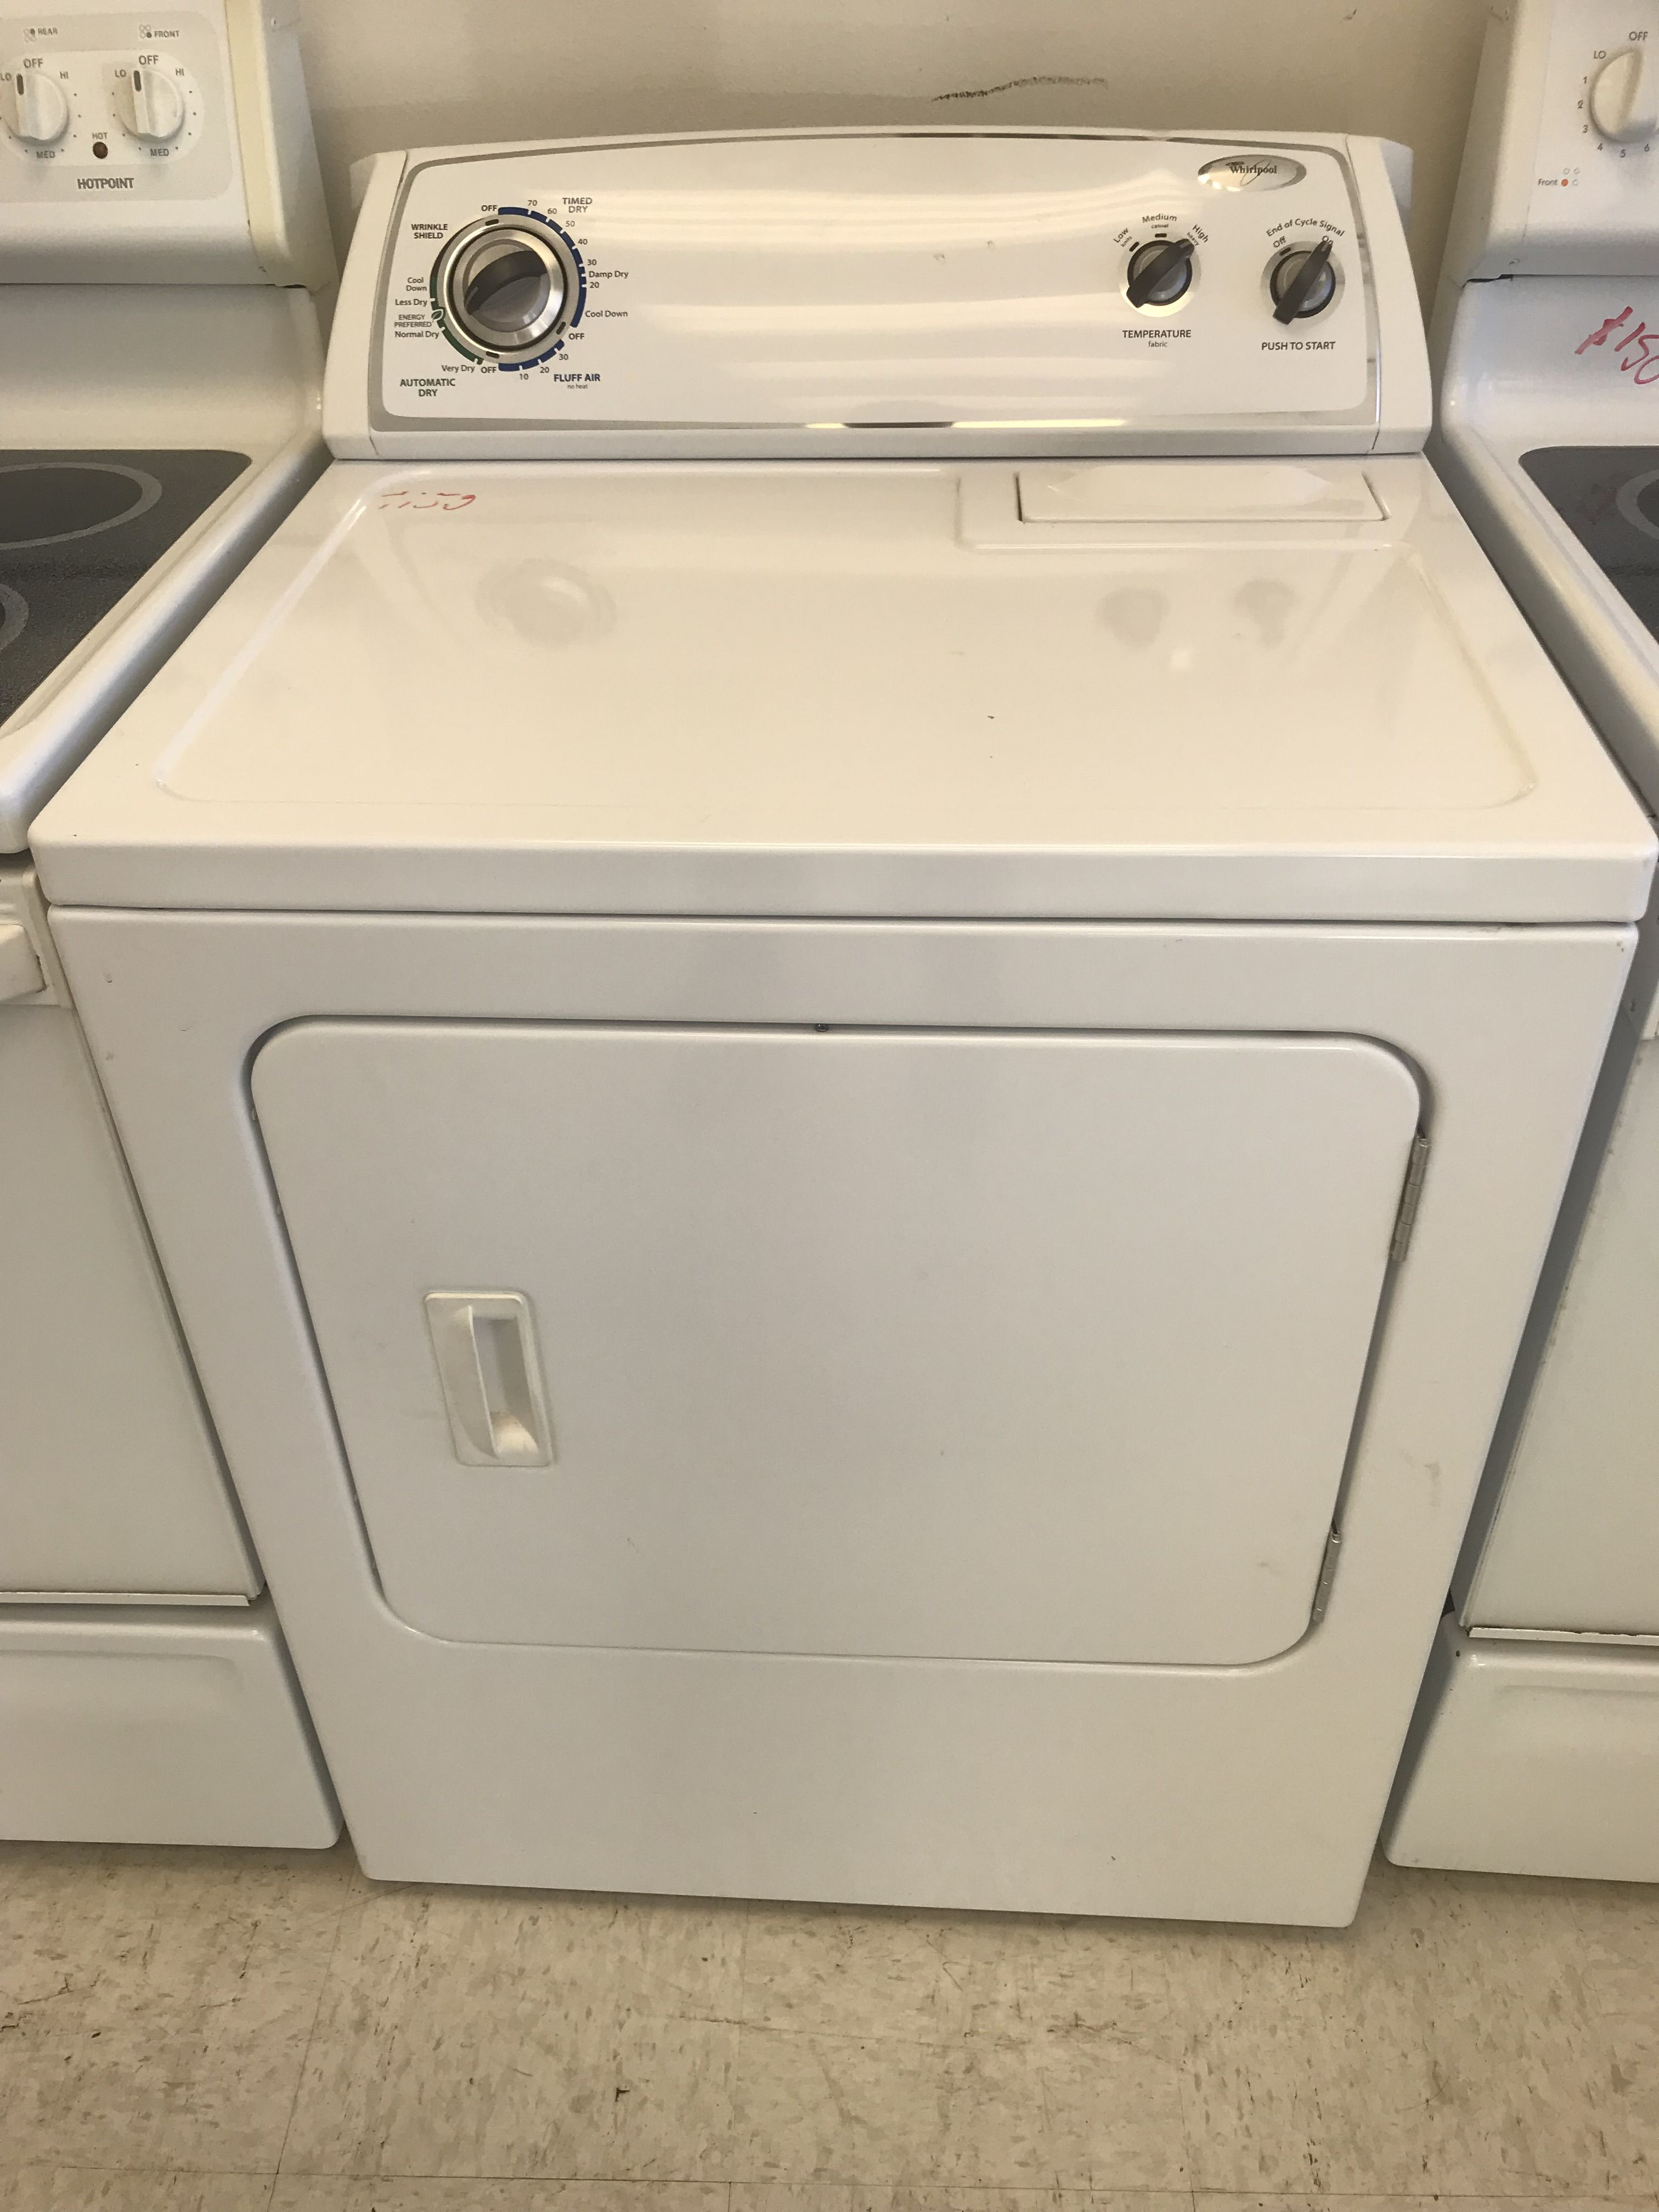 Selling This Beautiful Whirlpool Dryer In Excellent Condition For